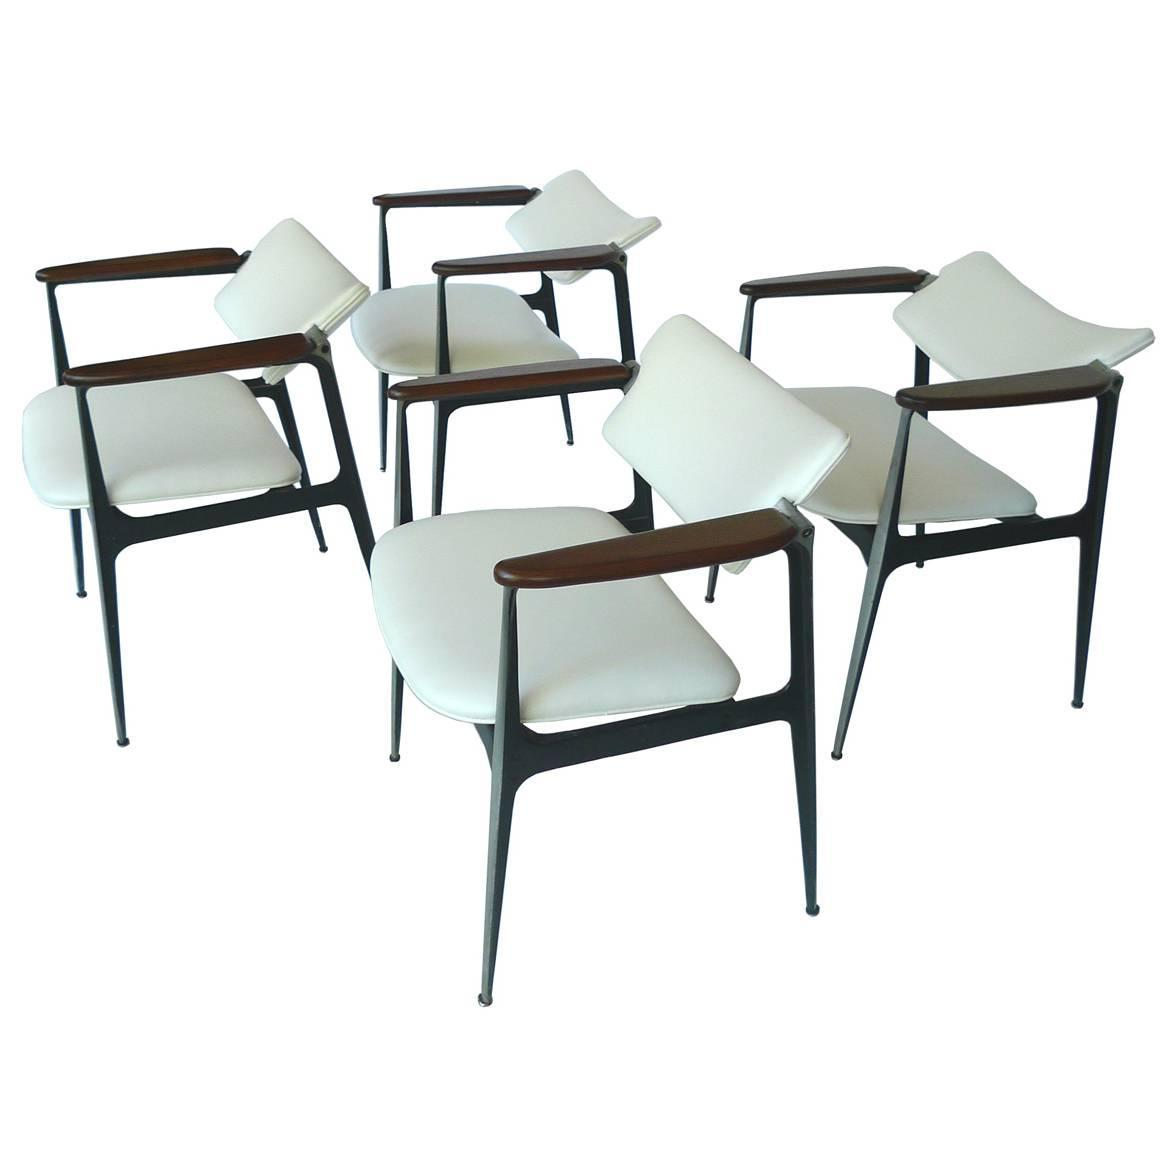 shelby williams chairs movie for sale gazelle set of four at 1stdibs